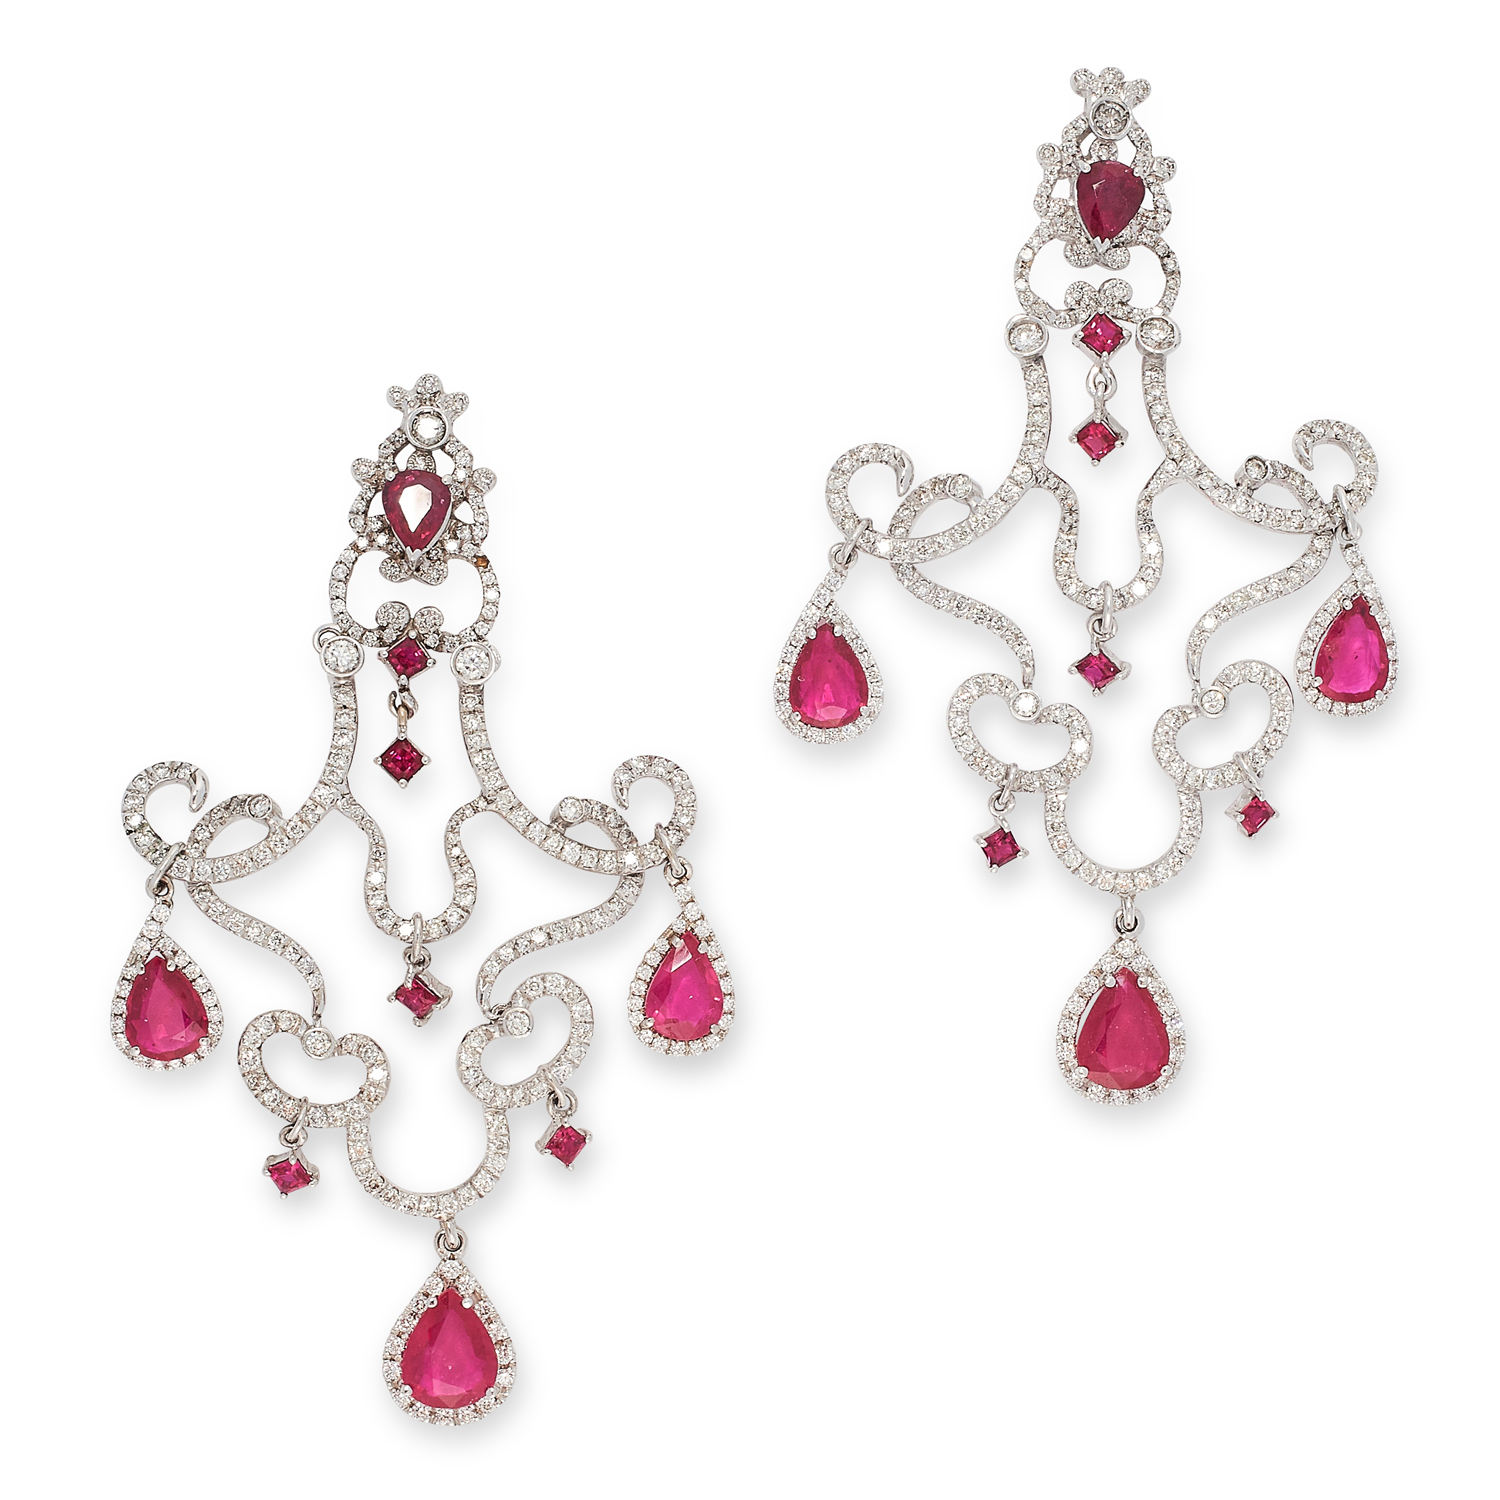 A PAIR OF RUBY AND DIAMOND CHANDELIER EARRINGS in 18ct white gold, the articulated bodies set with